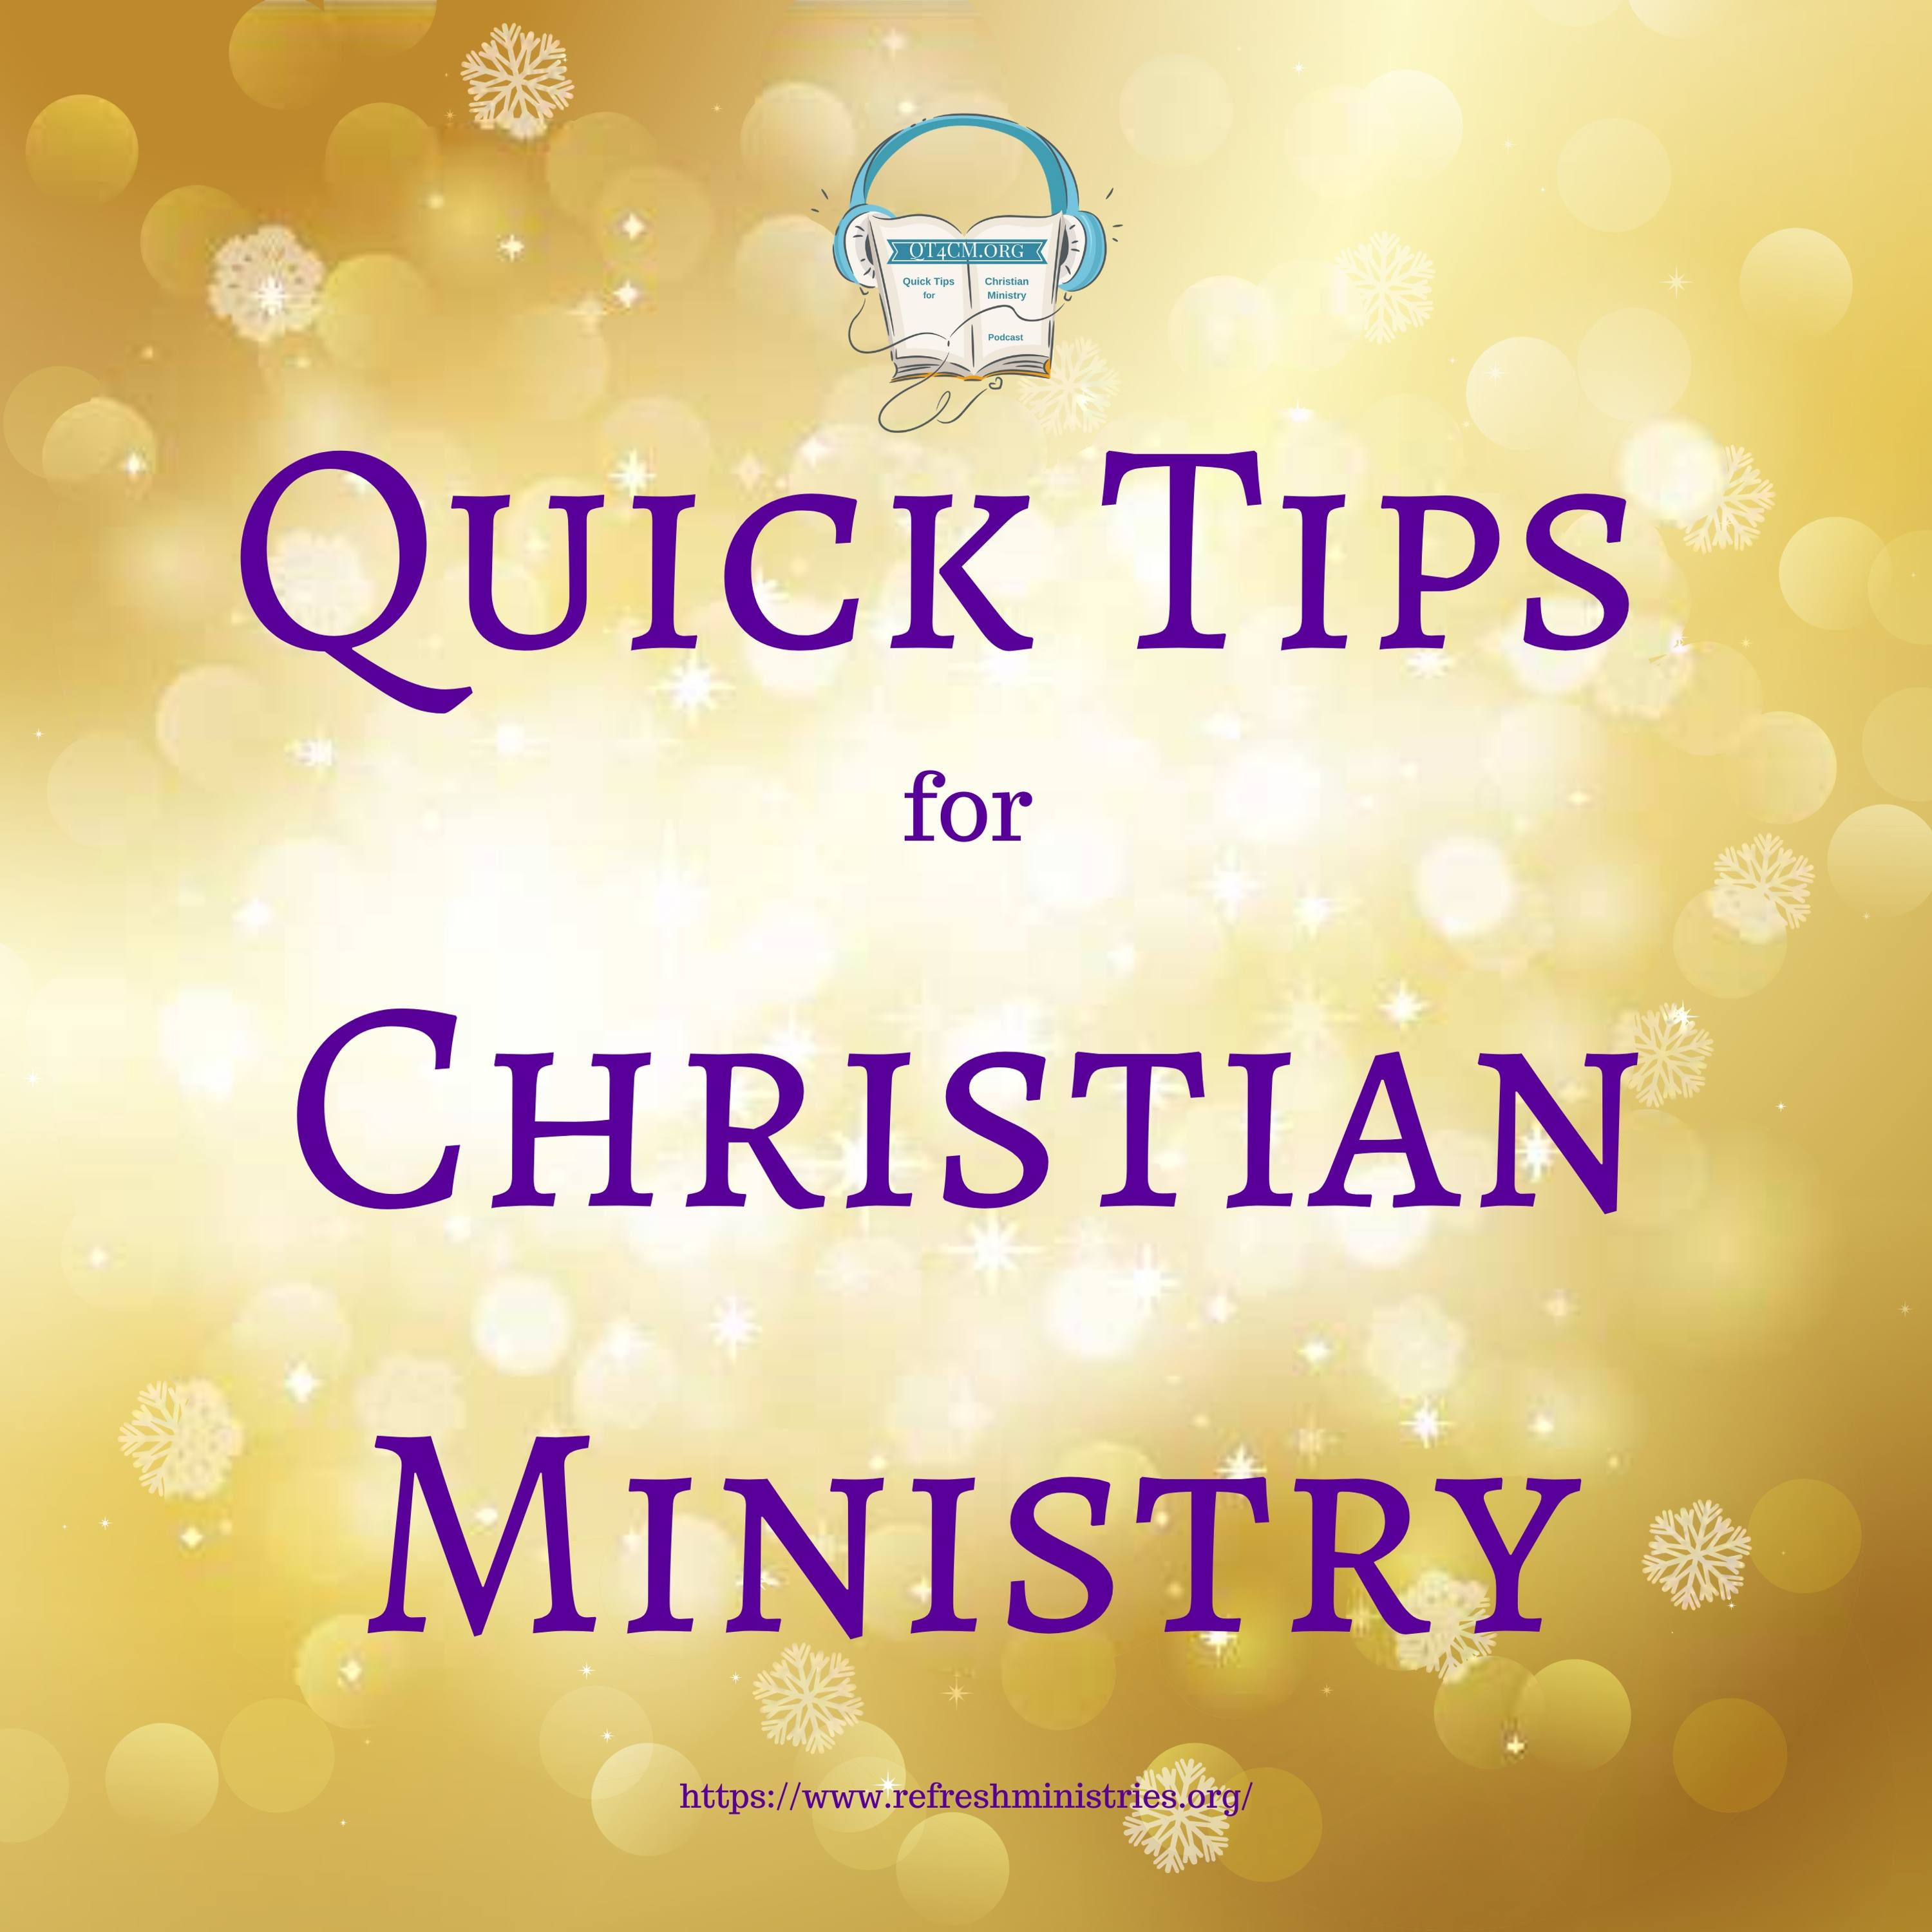 Refresh: Quick Tips for Christian Ministry